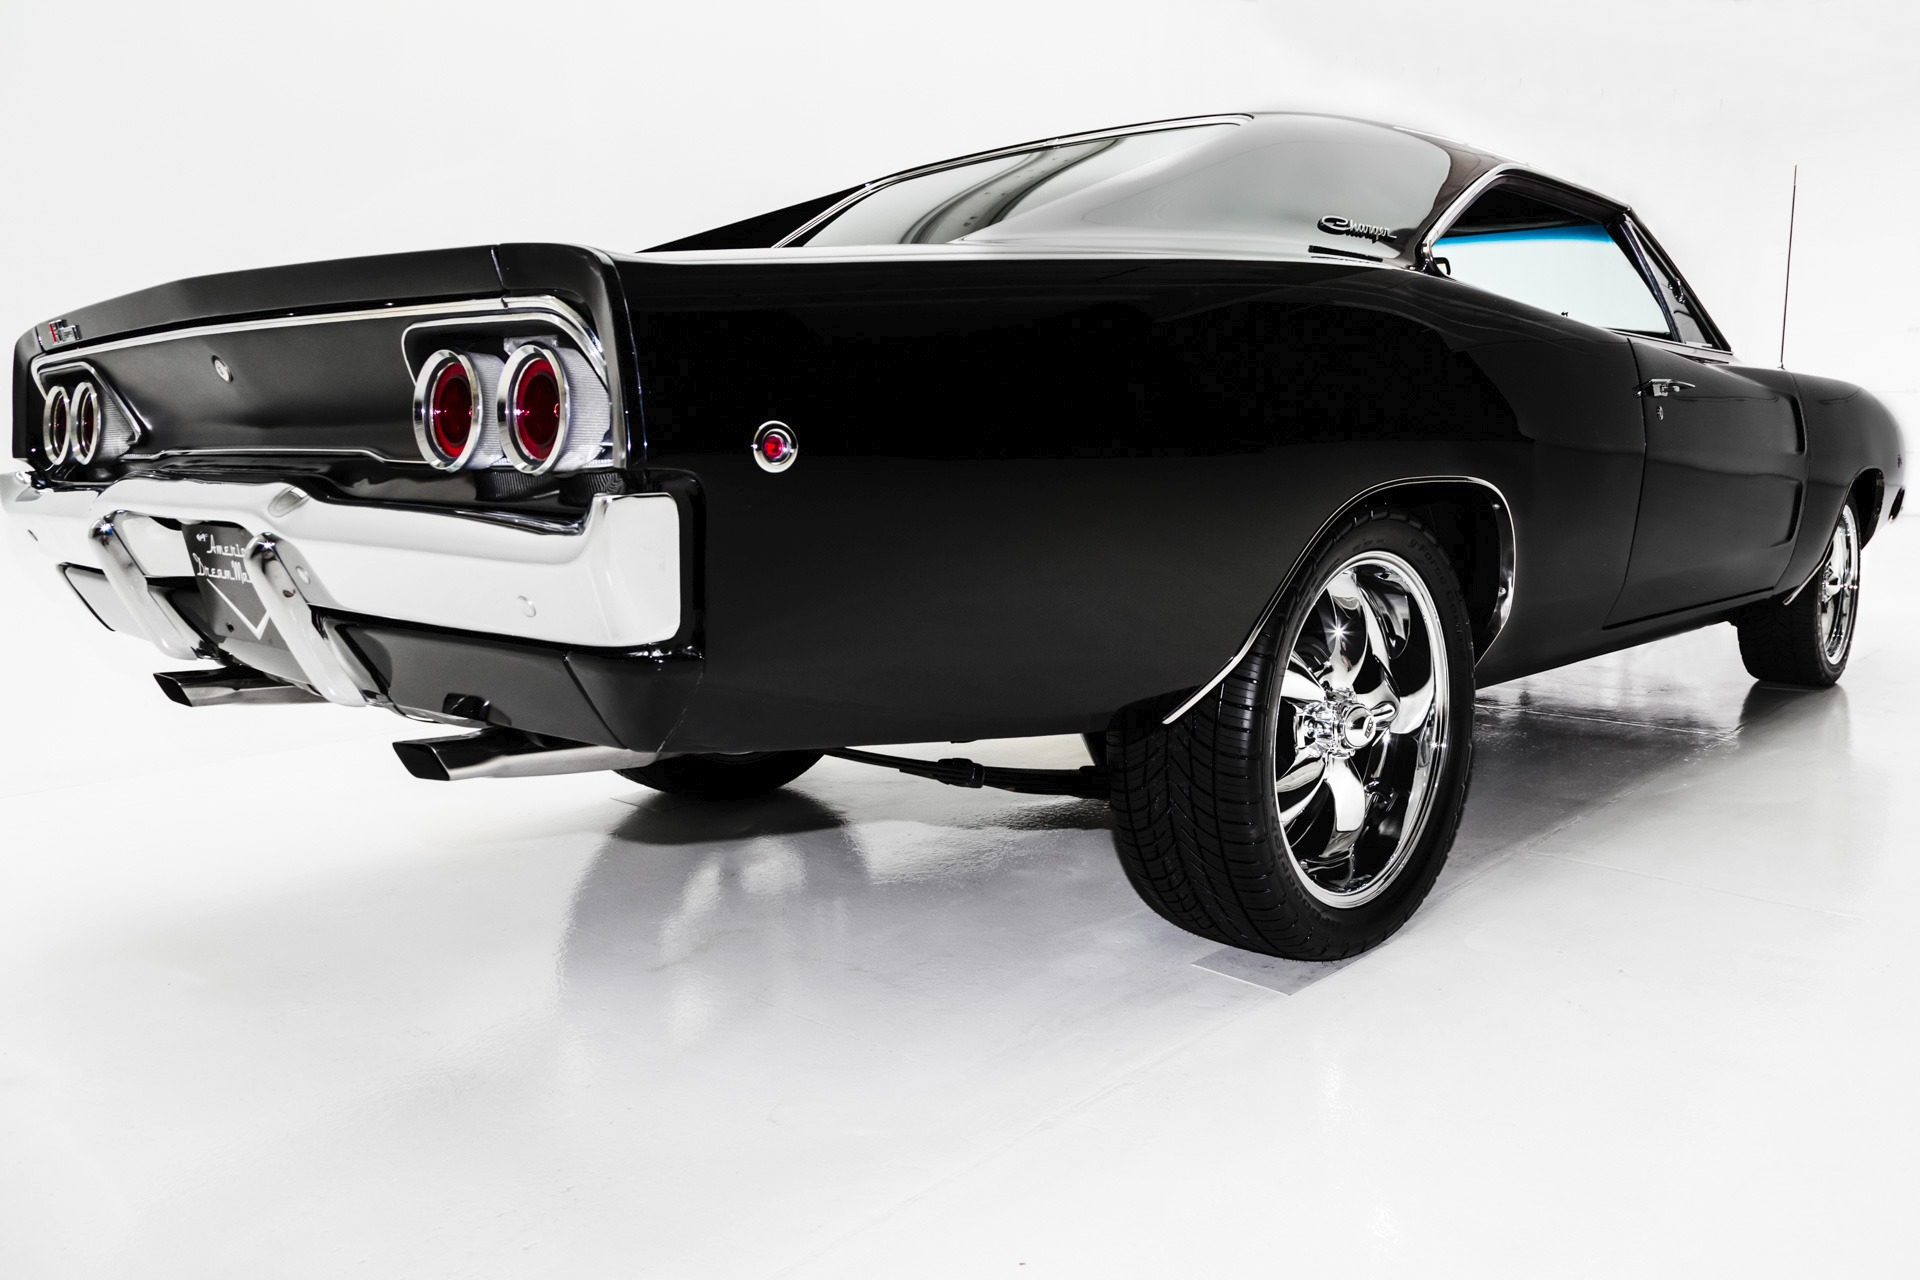 1968 Dodge Charger Black 440, Pistol Grip 4-Spd